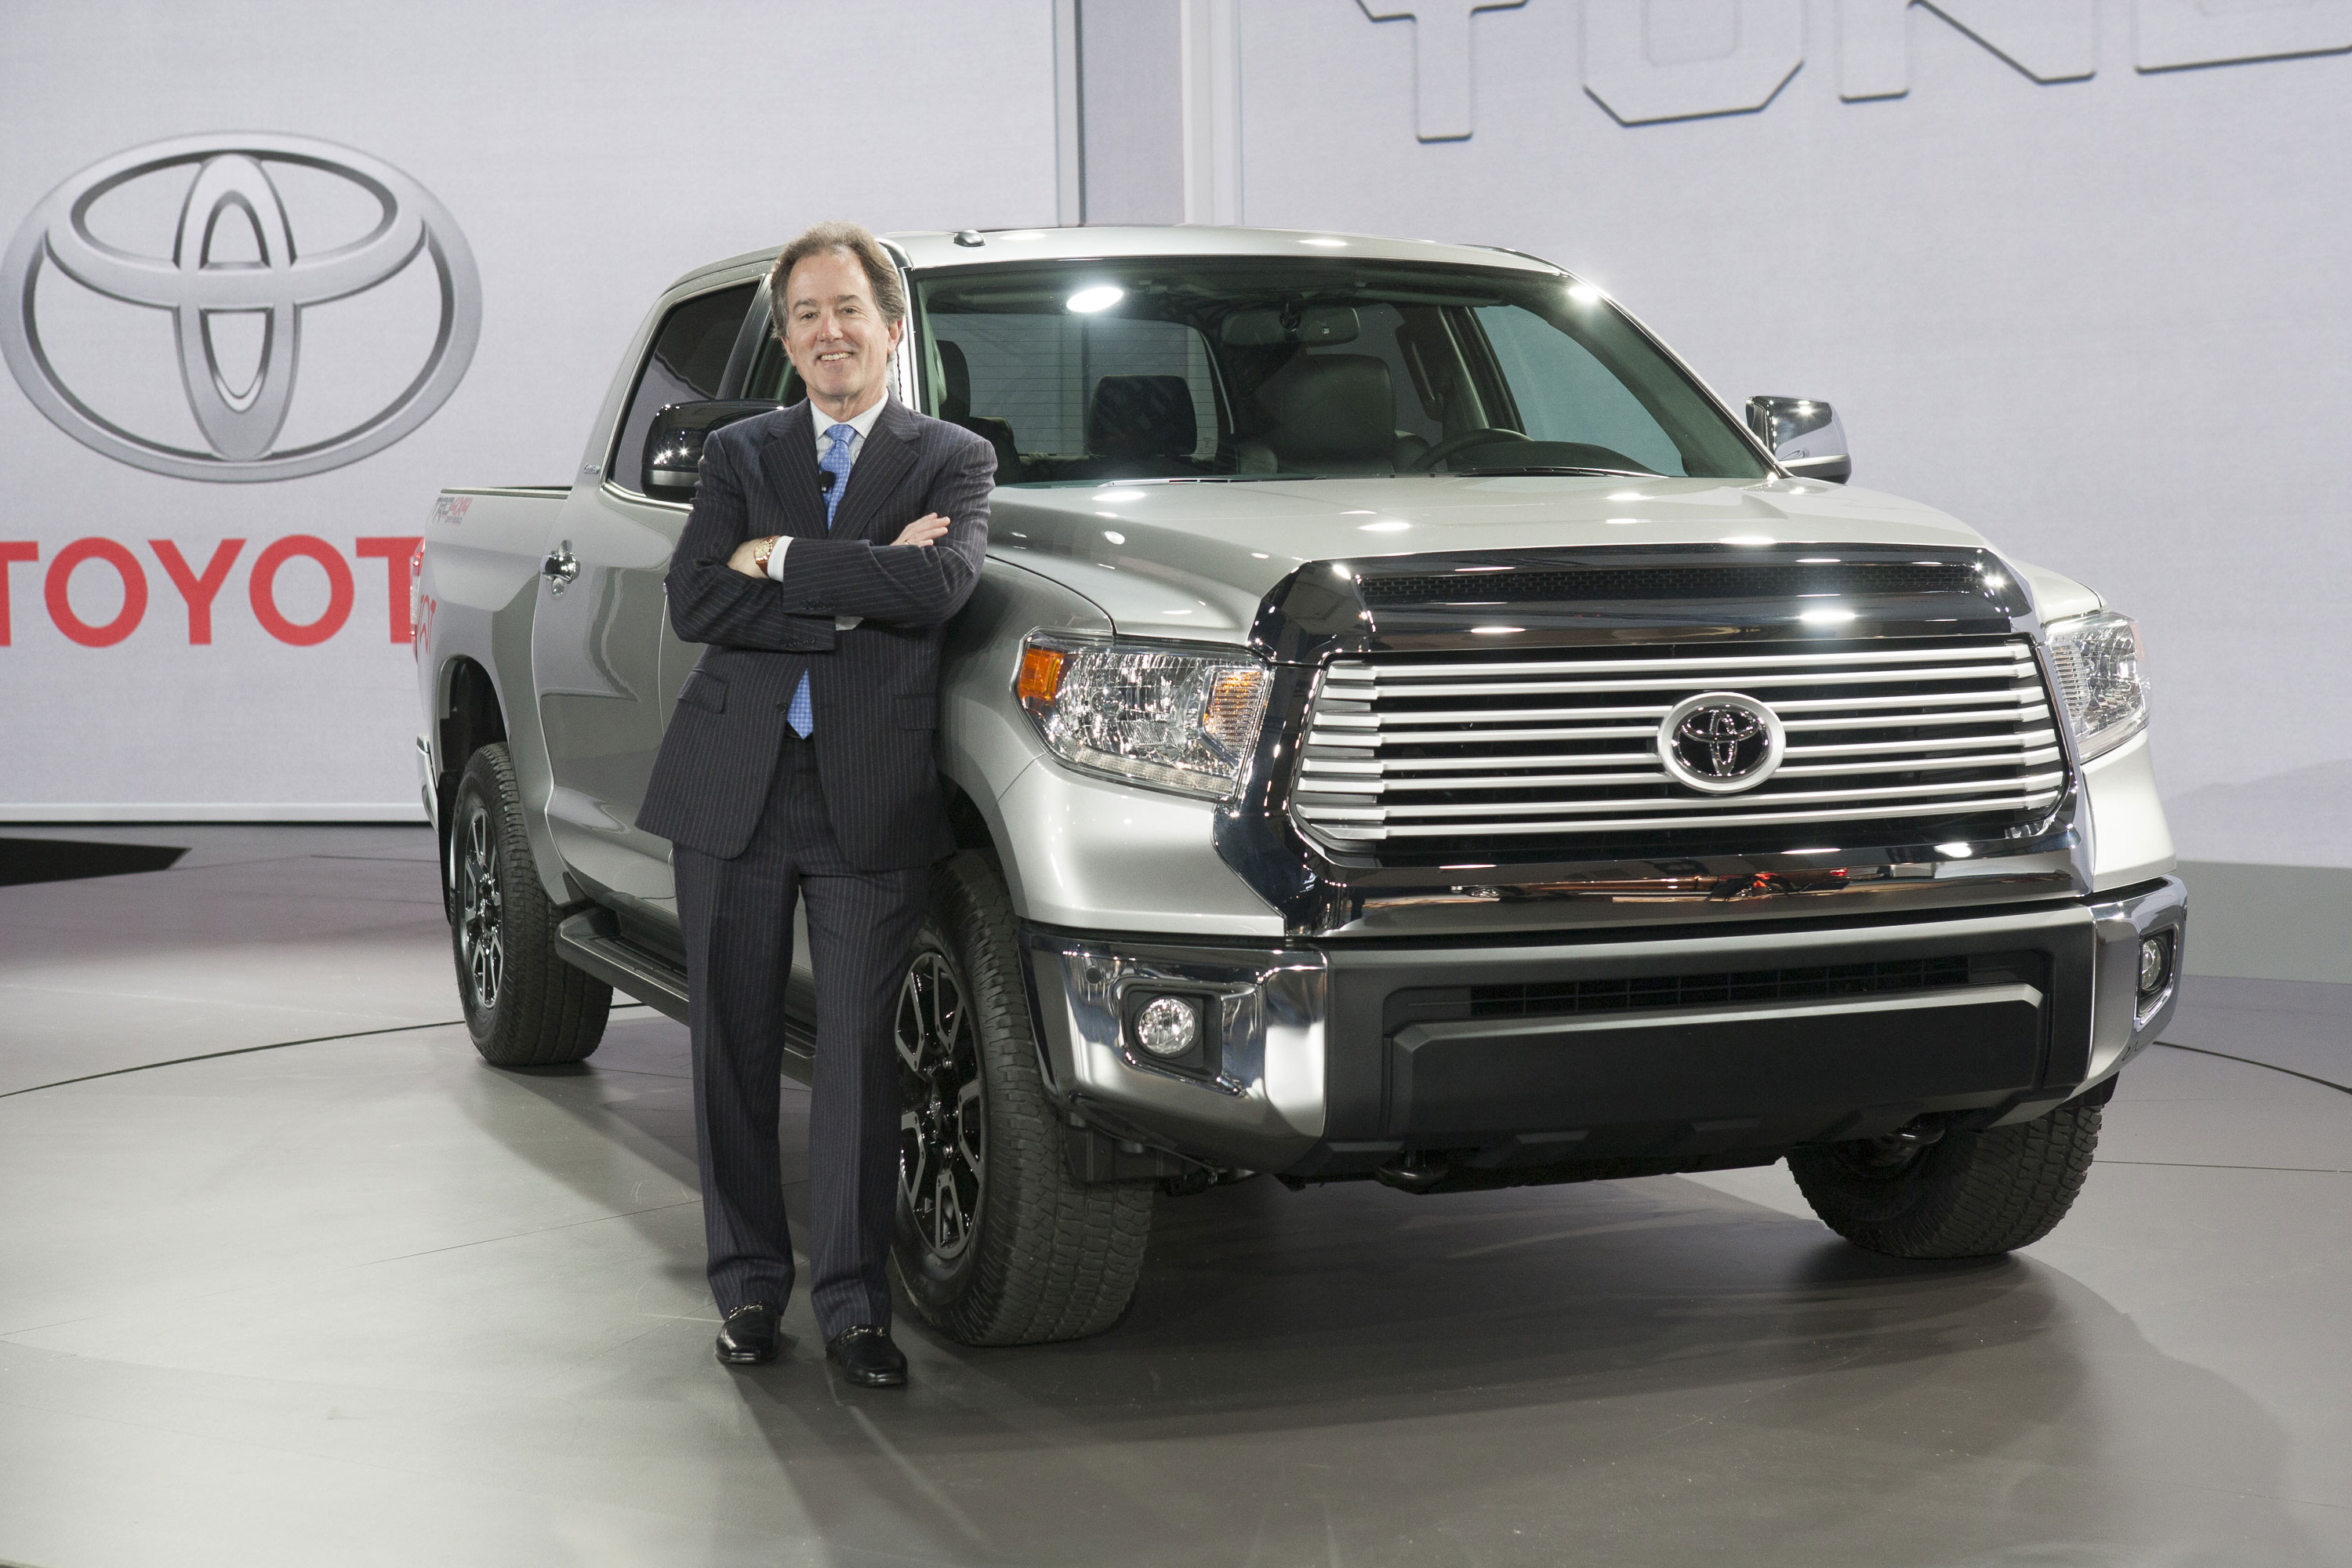 Bill Fay, Toyota Division group vice president and general manager, poses with the redesigned 2014 Tundra full-size pickup truck prior to its unveiling at the 2013 Chicago Auto Show.